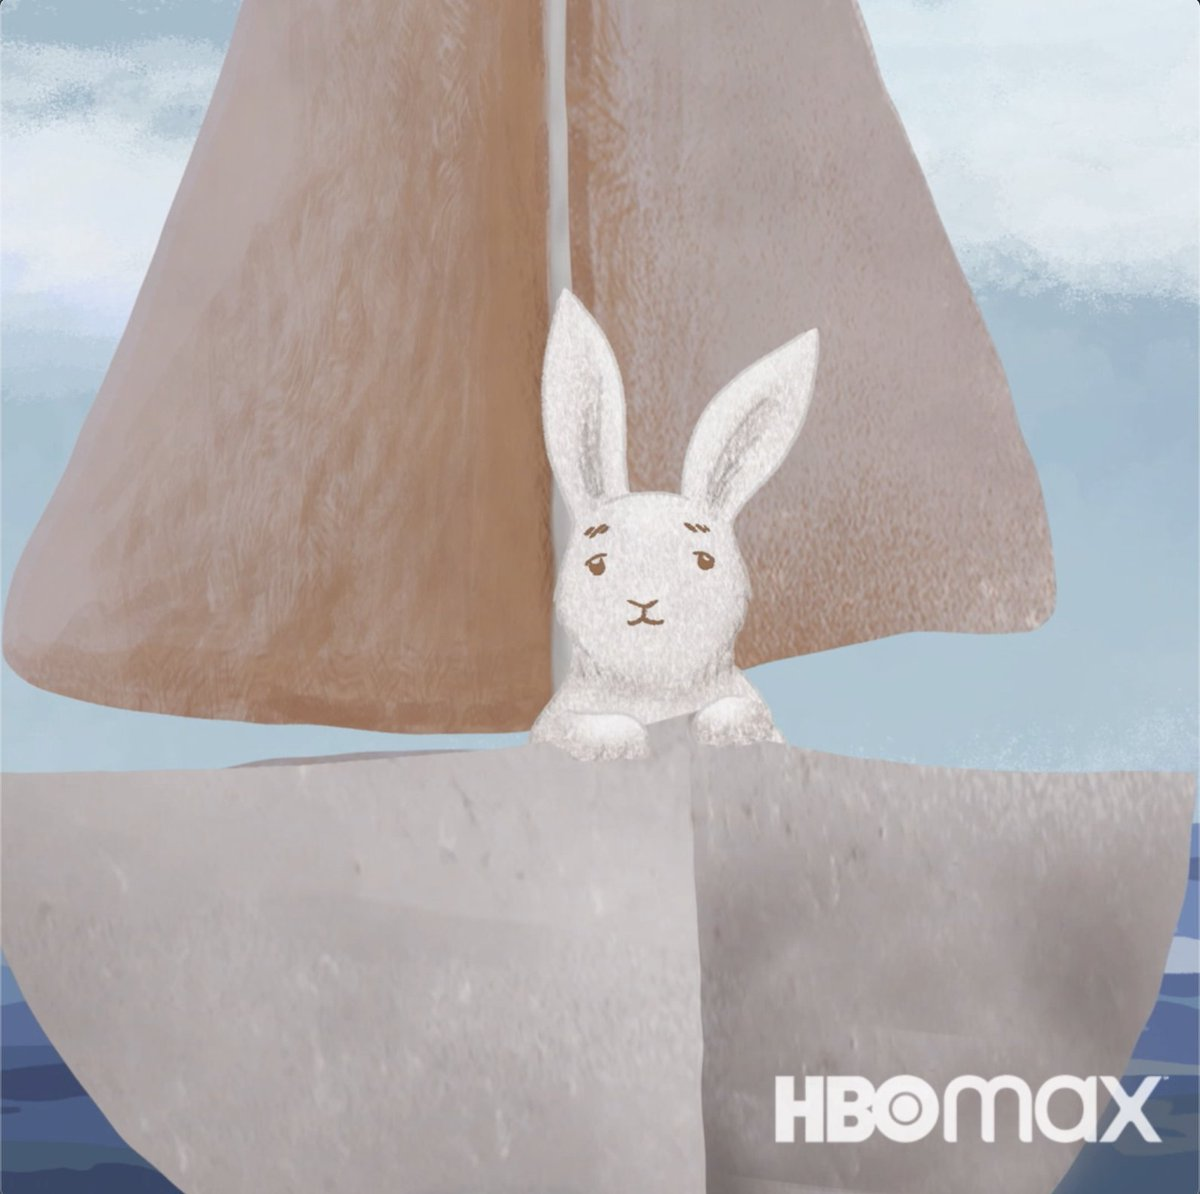 Once there was a little bunny who wanted to run away. A timeless classic animated to life with music by @MariahCarey, @mrskimyadawson, @ziggymarley and more. Narrated by @TraceeEllisRoss, The Runaway Bunny is streaming March 25 only on HBO Max.